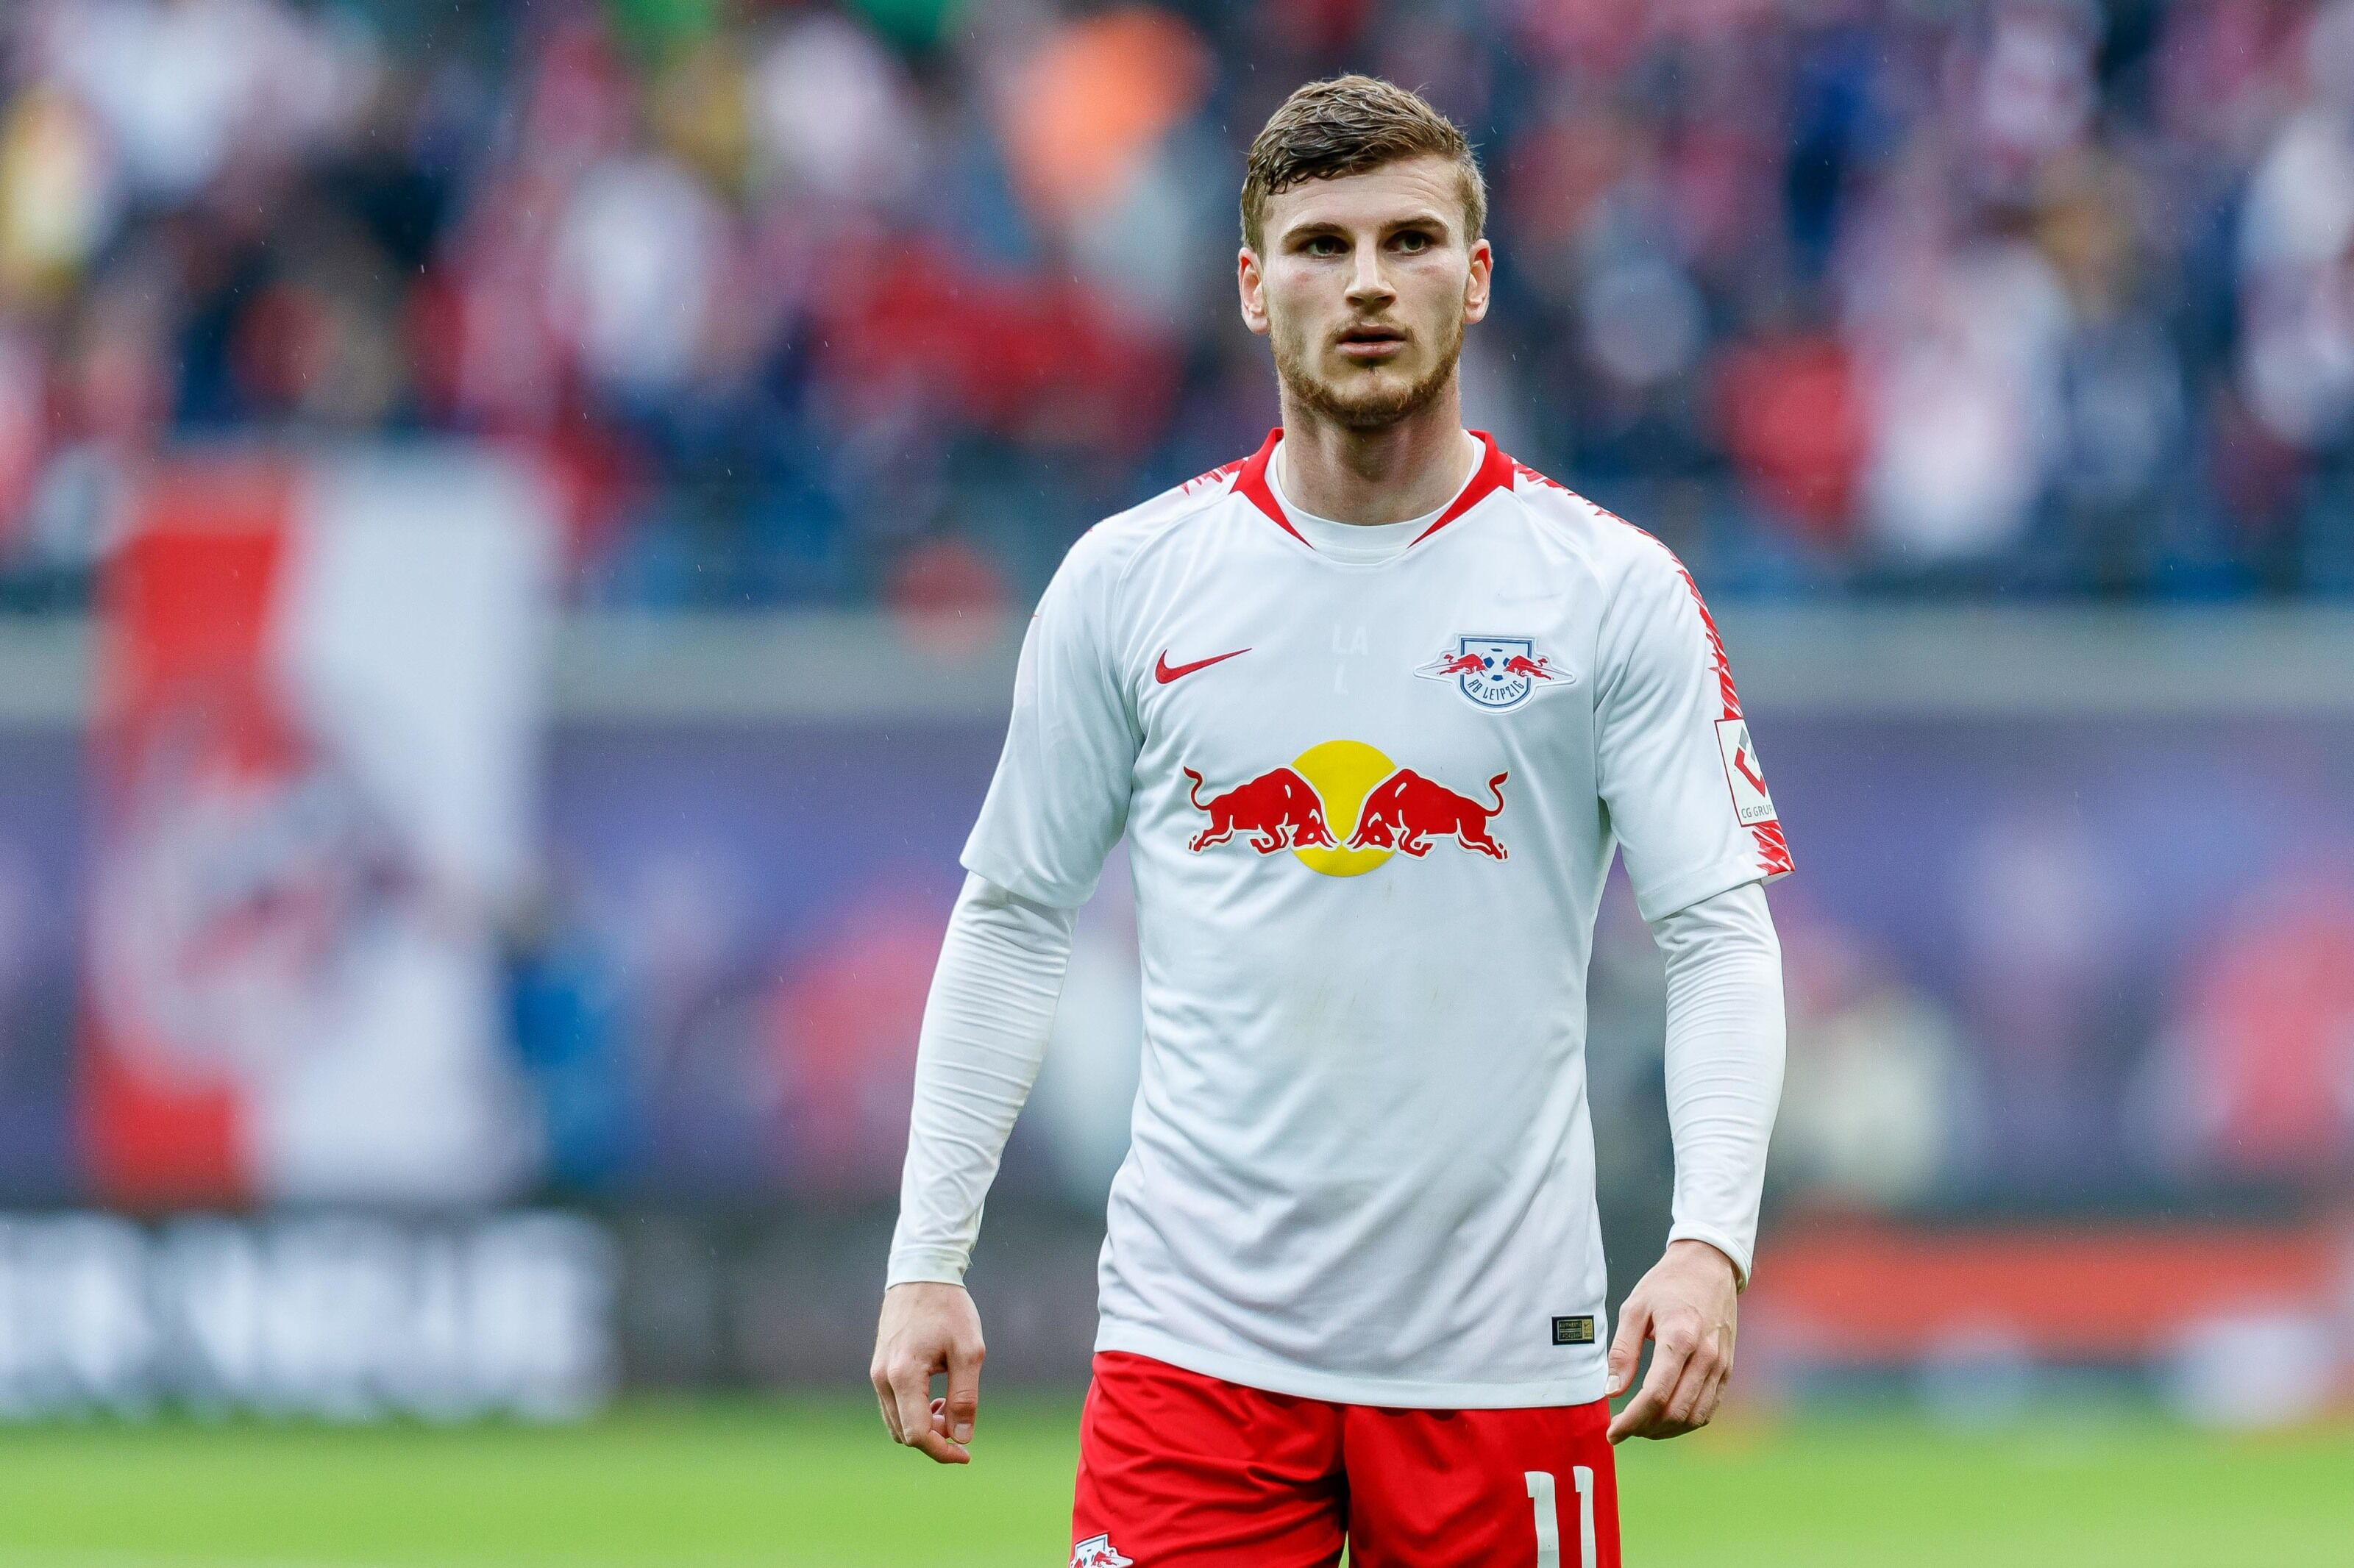 Report: Bayern Munich skeptical about signing Timo Werner from RB Leipzig